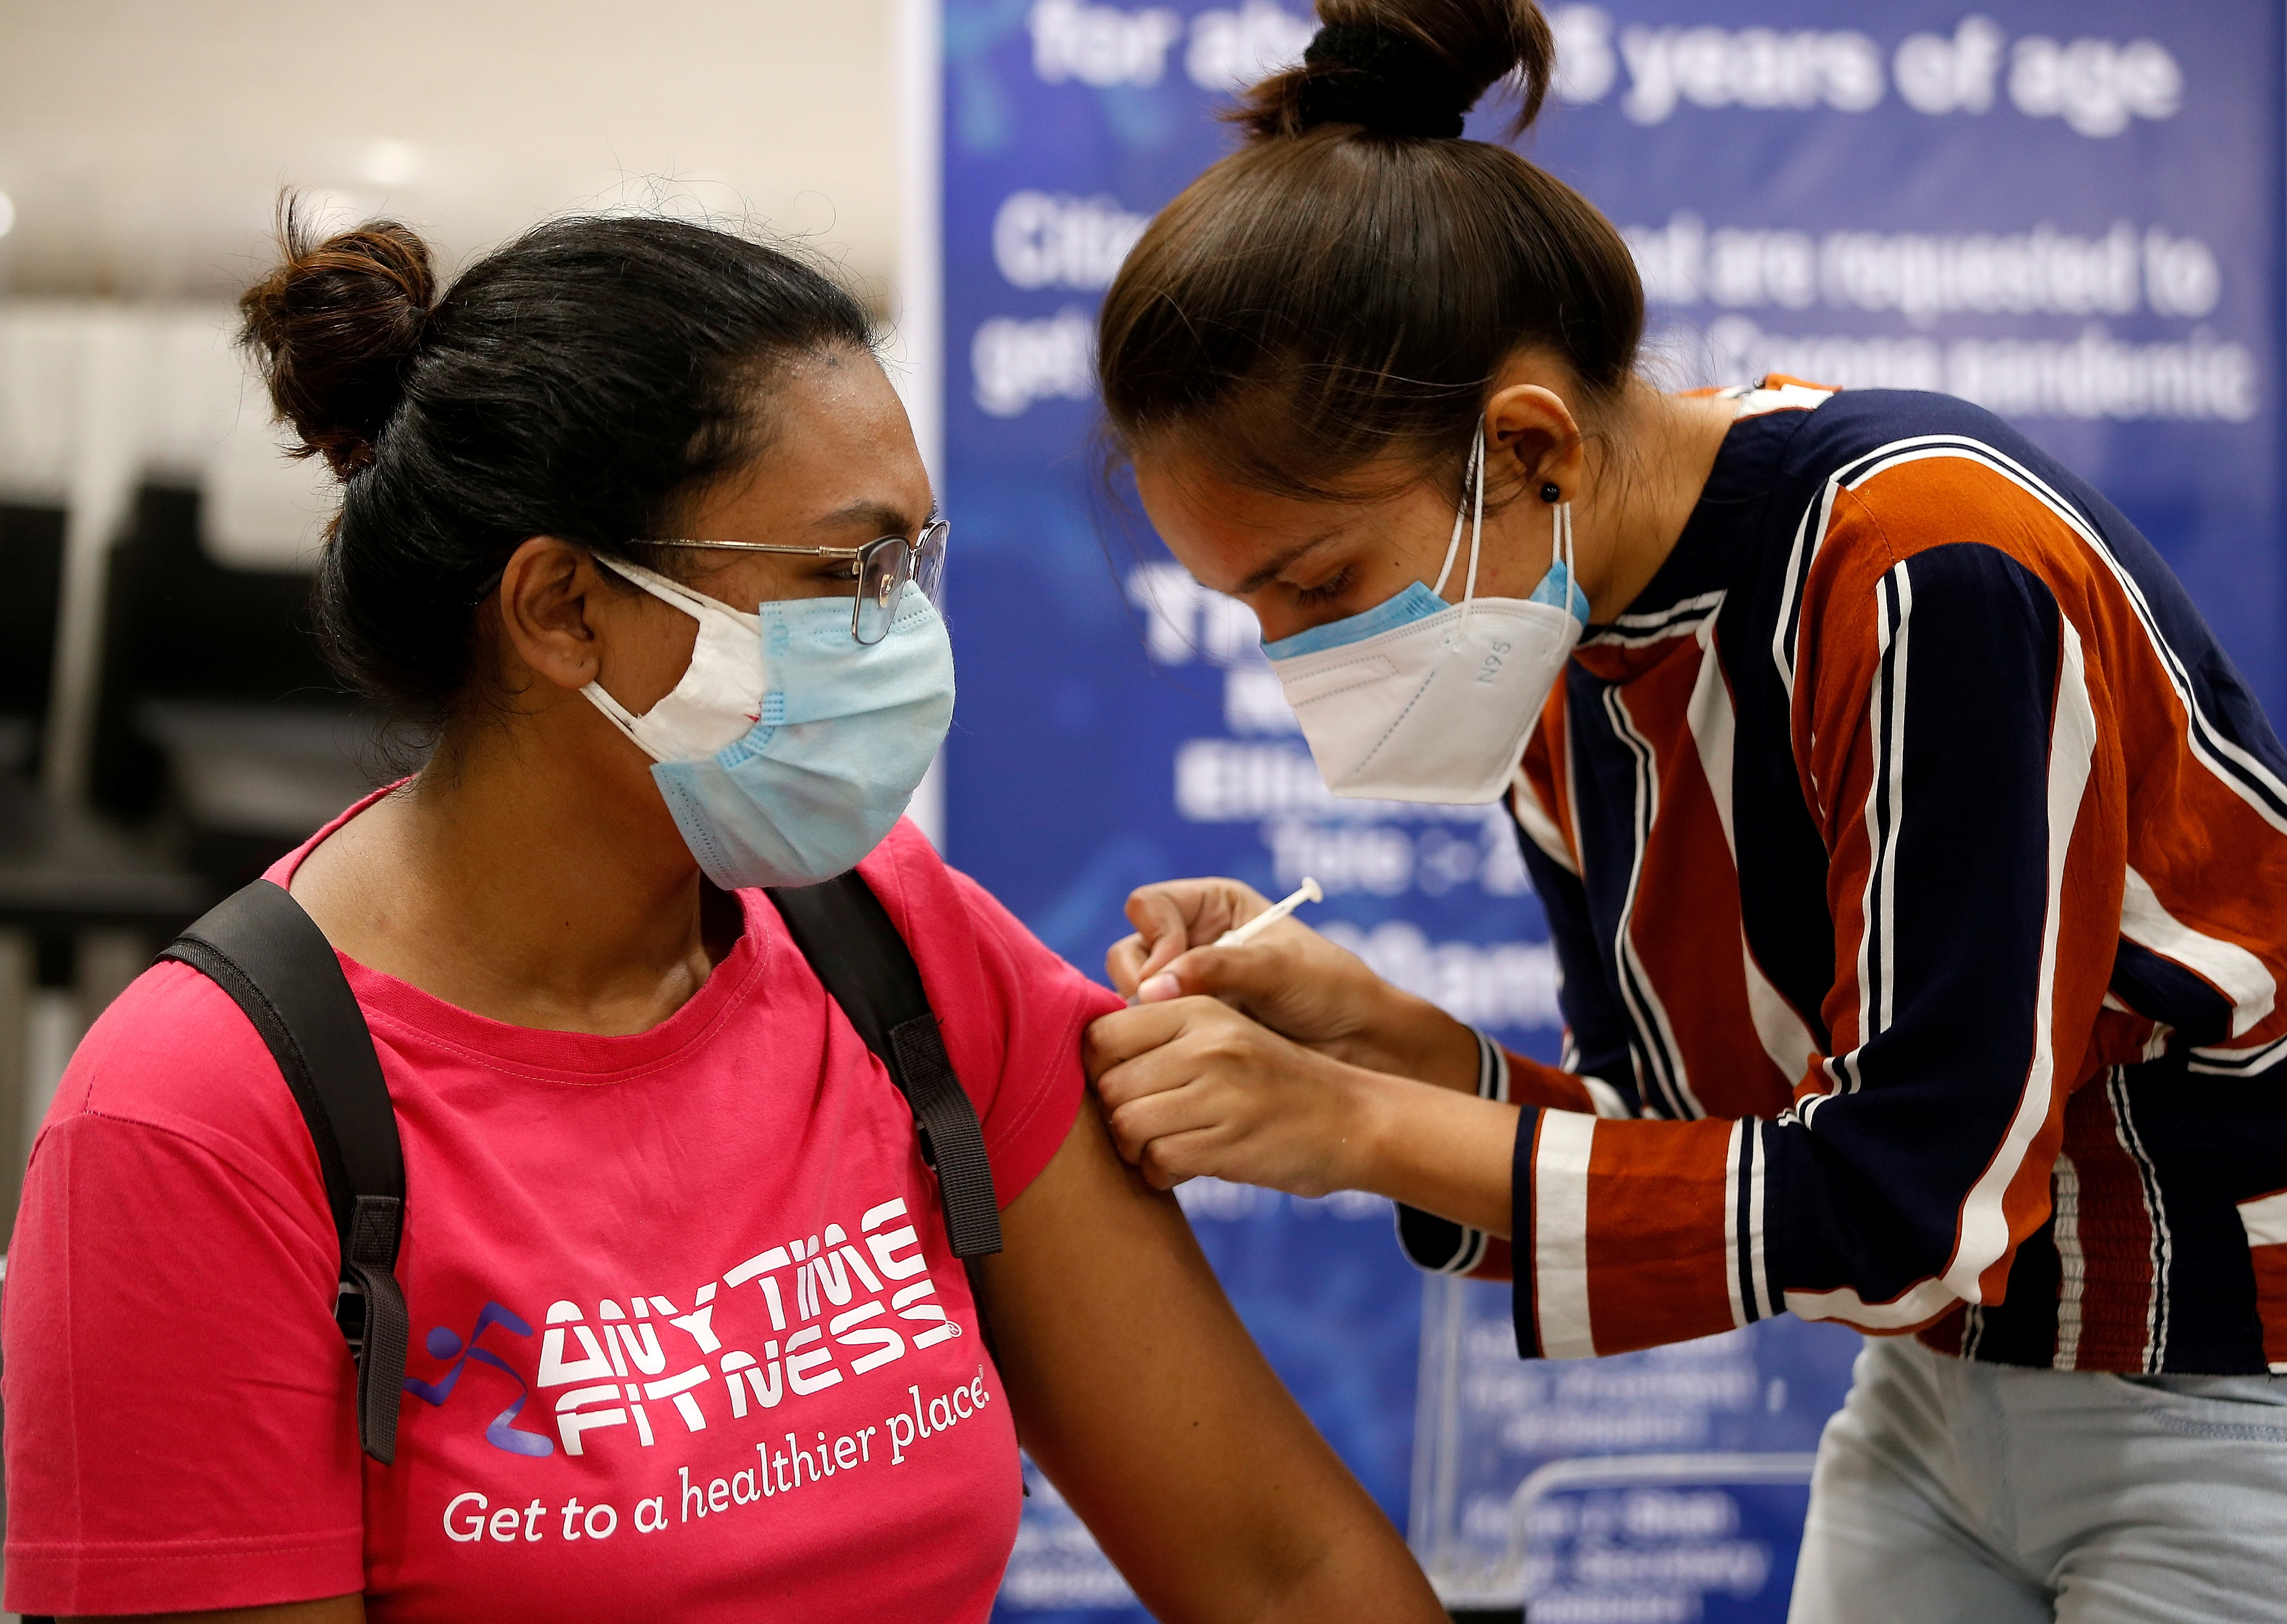 A woman receives a dose of COVISHIELD, a coronavirus disease (COVID-19) vaccine manufactured by Serum Institute of India, at a vaccination centre in Ahmedabad, India, May 1, 2021. REUTERS/Amit Dave